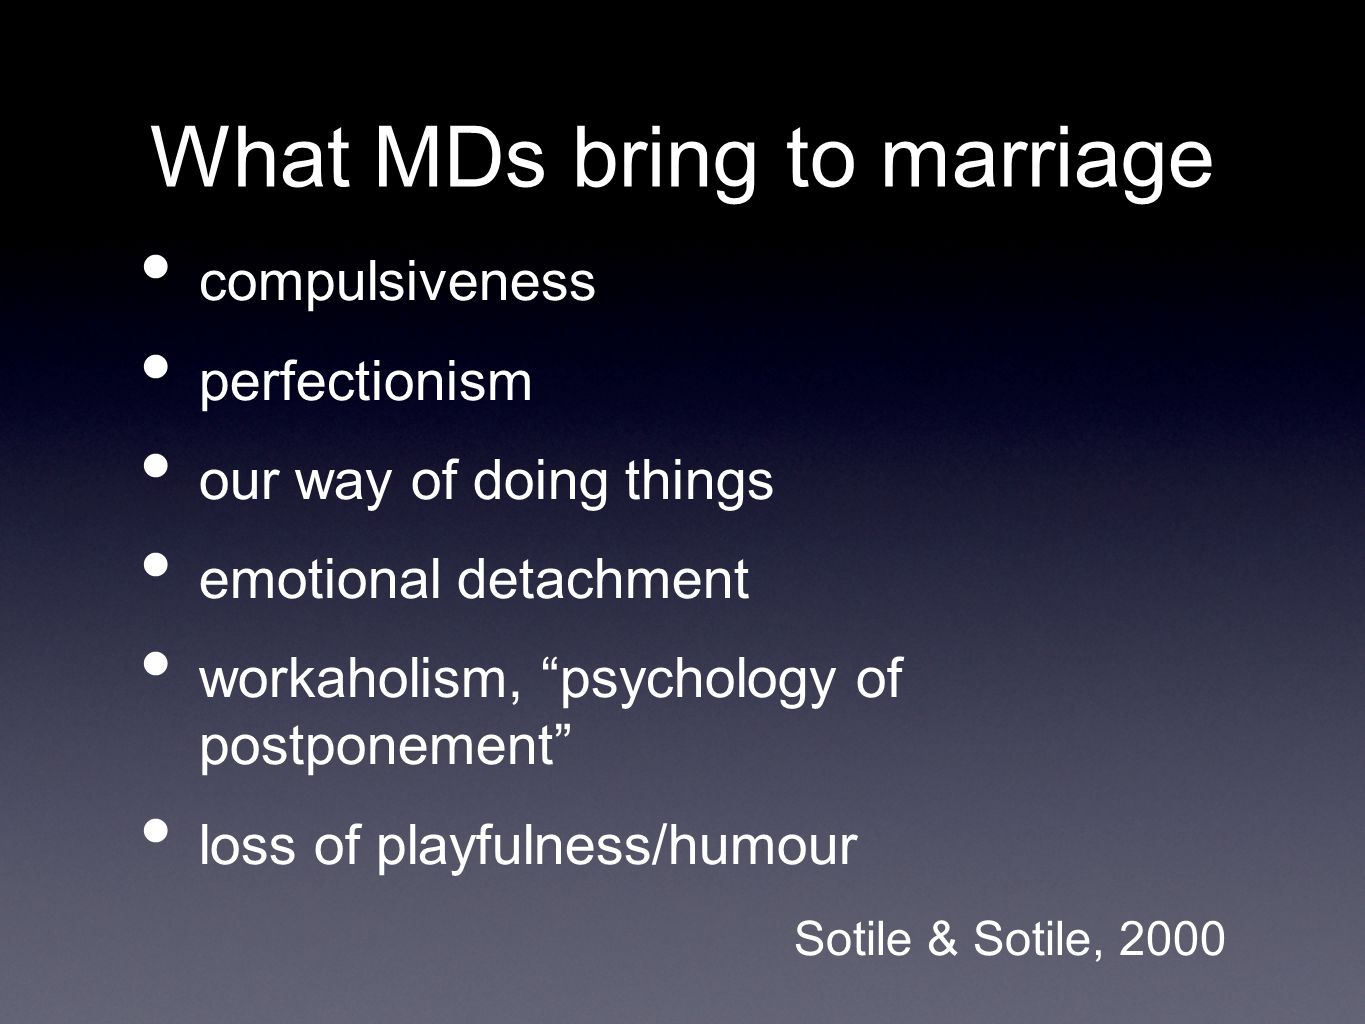 What MDs bring to marriage compulsiveness perfectionism our way of doing things emotional detachment workaholism, psychology of postponement loss of playfulness/humour Sotile & Sotile, 2000